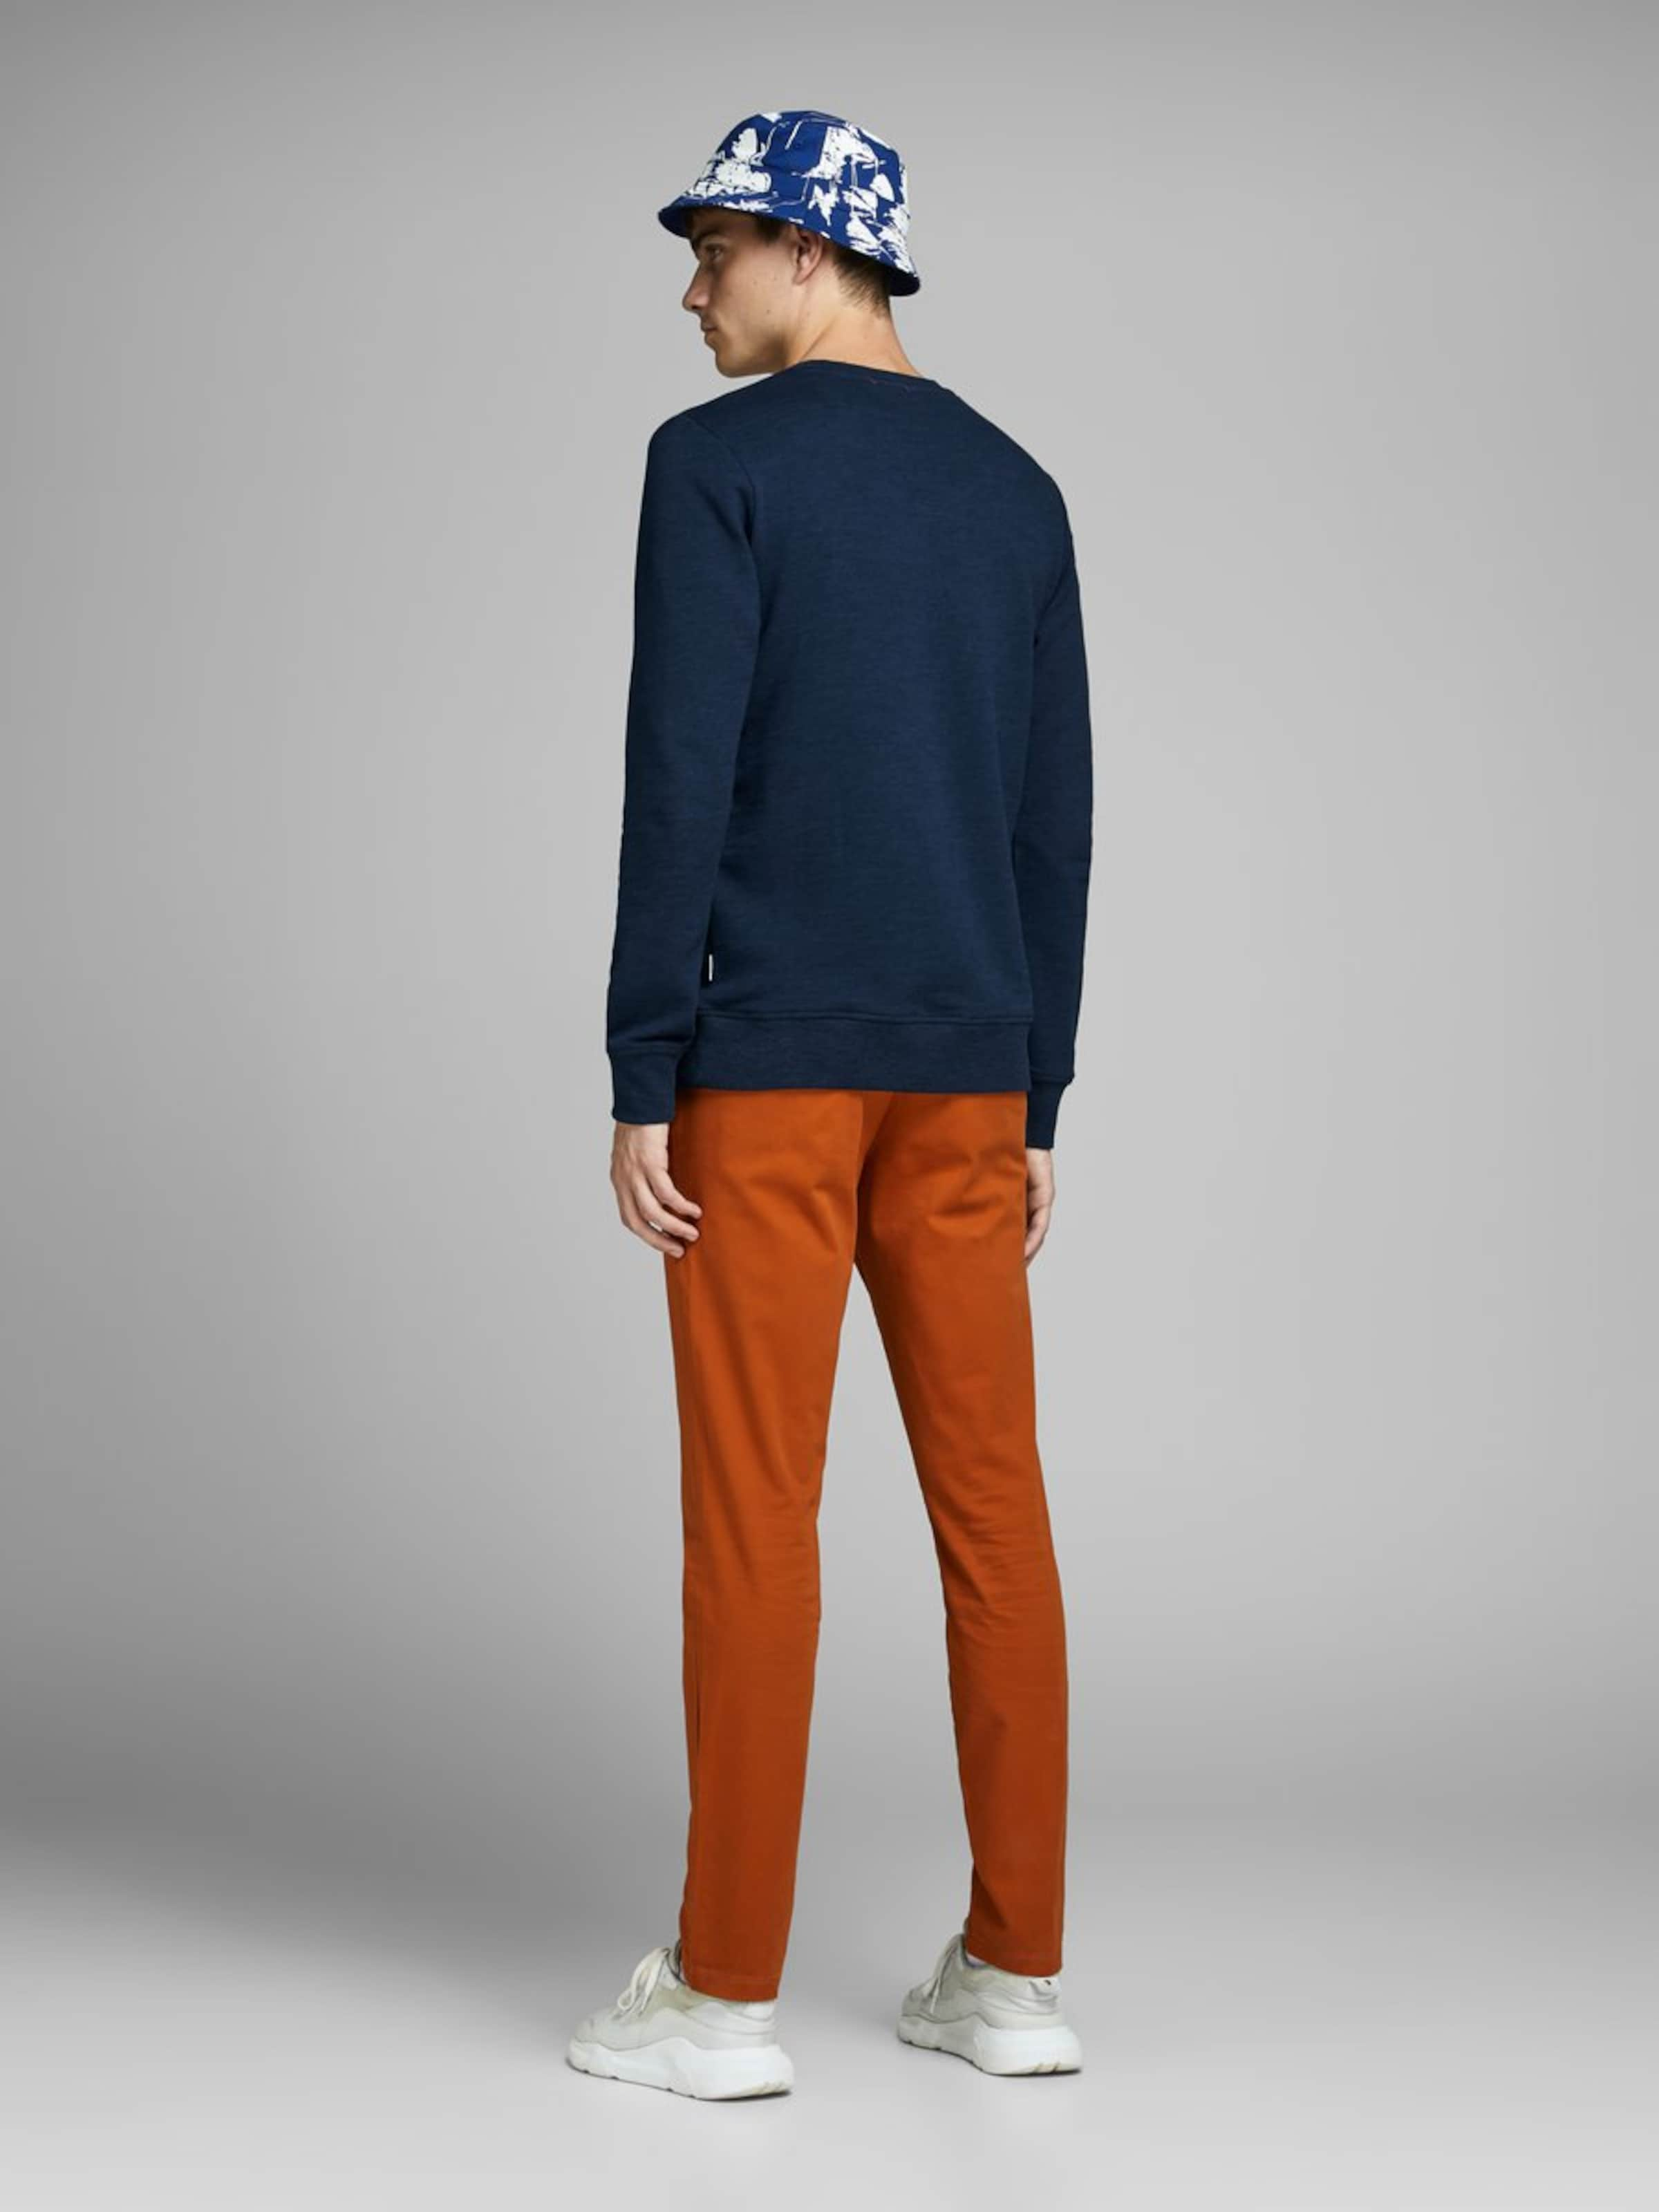 NavyRot Jones In Jackamp; Sweatshirt Jackamp; Sweatshirt In Jones 45q3ARjL